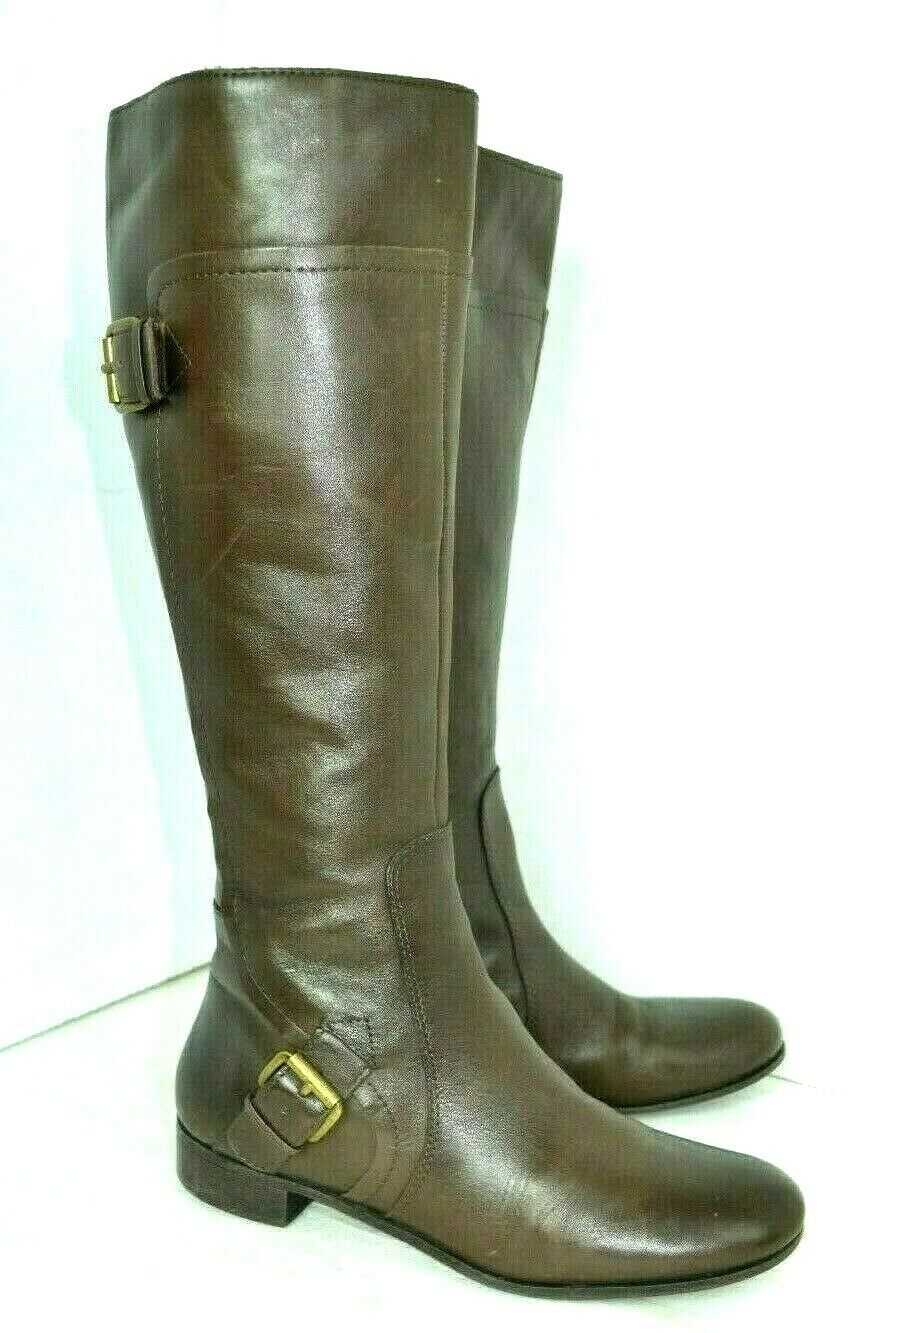 NINE WEST VINTAGE AMERICA BROWN GENUINE LEATHER BOOTS SIZE 7 M